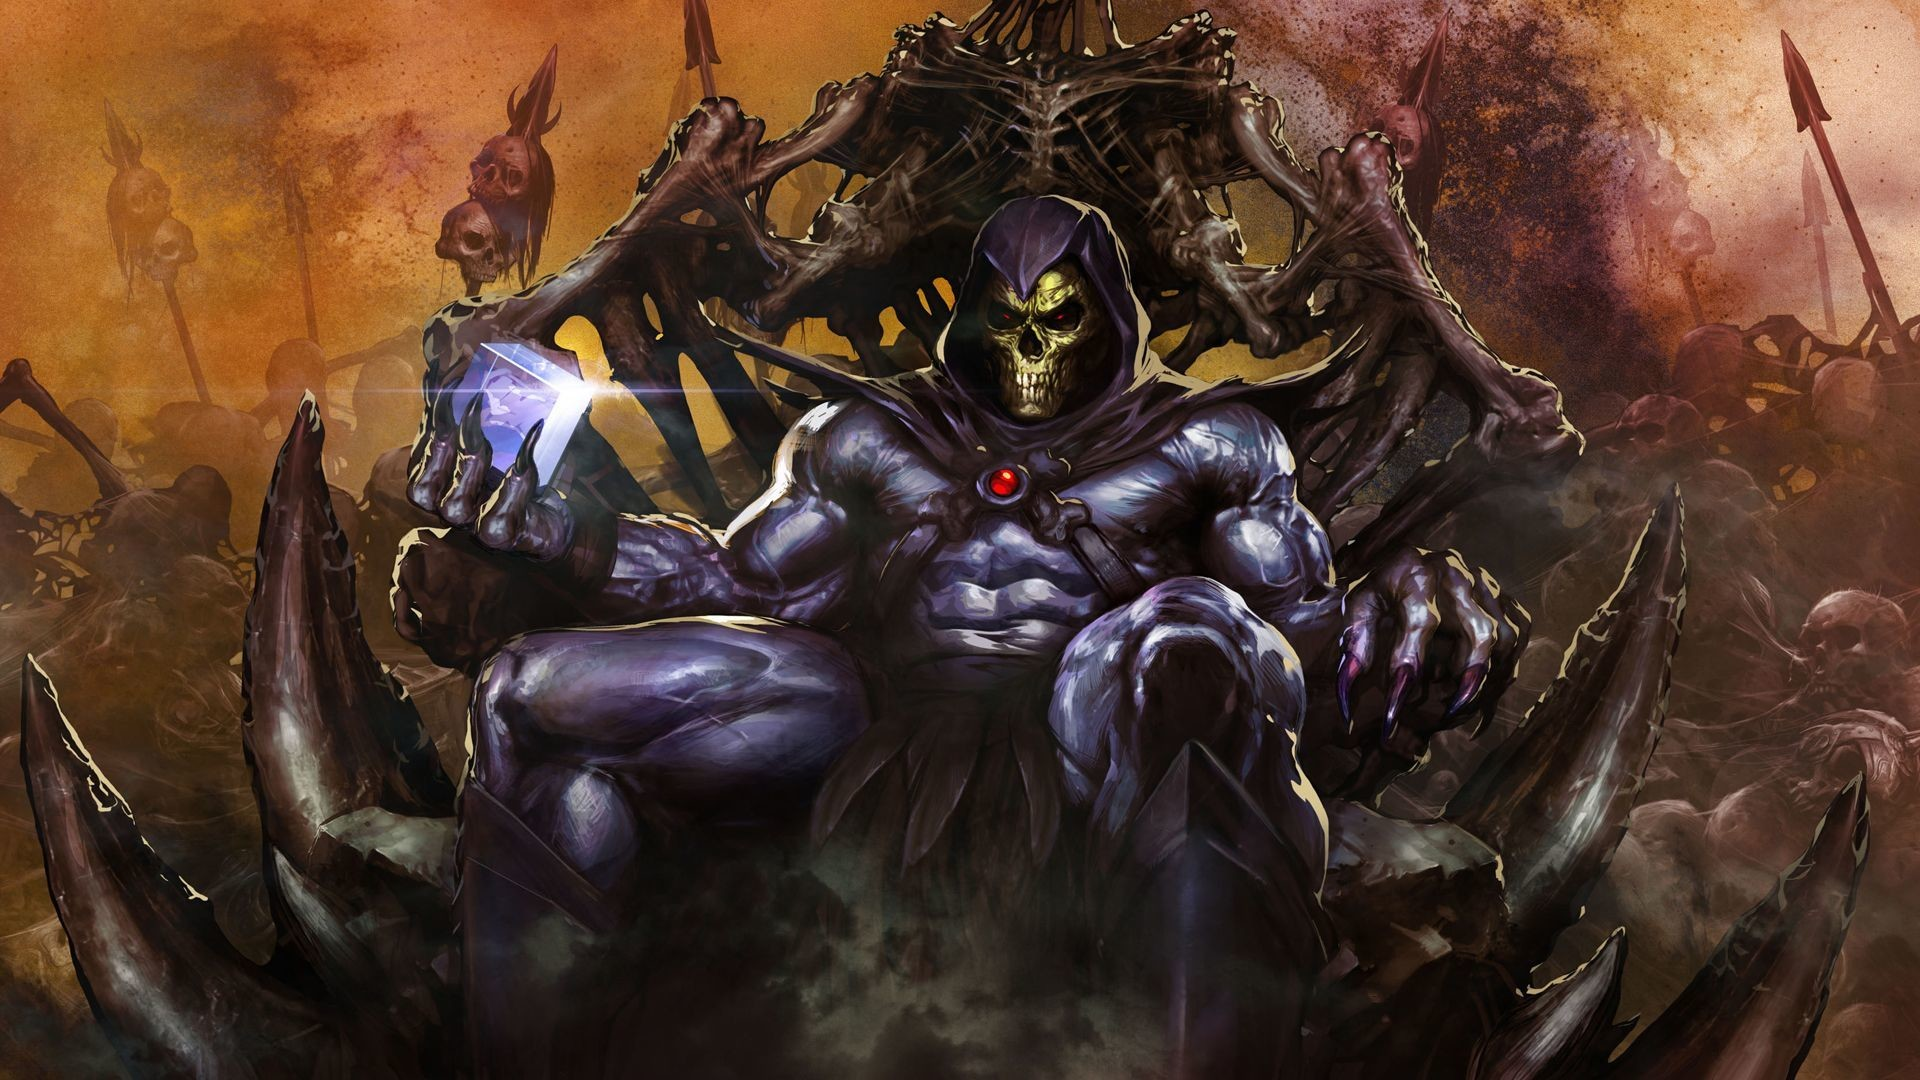 He-Man and the Masters of the Universe HD Wallpaper 1920×1080